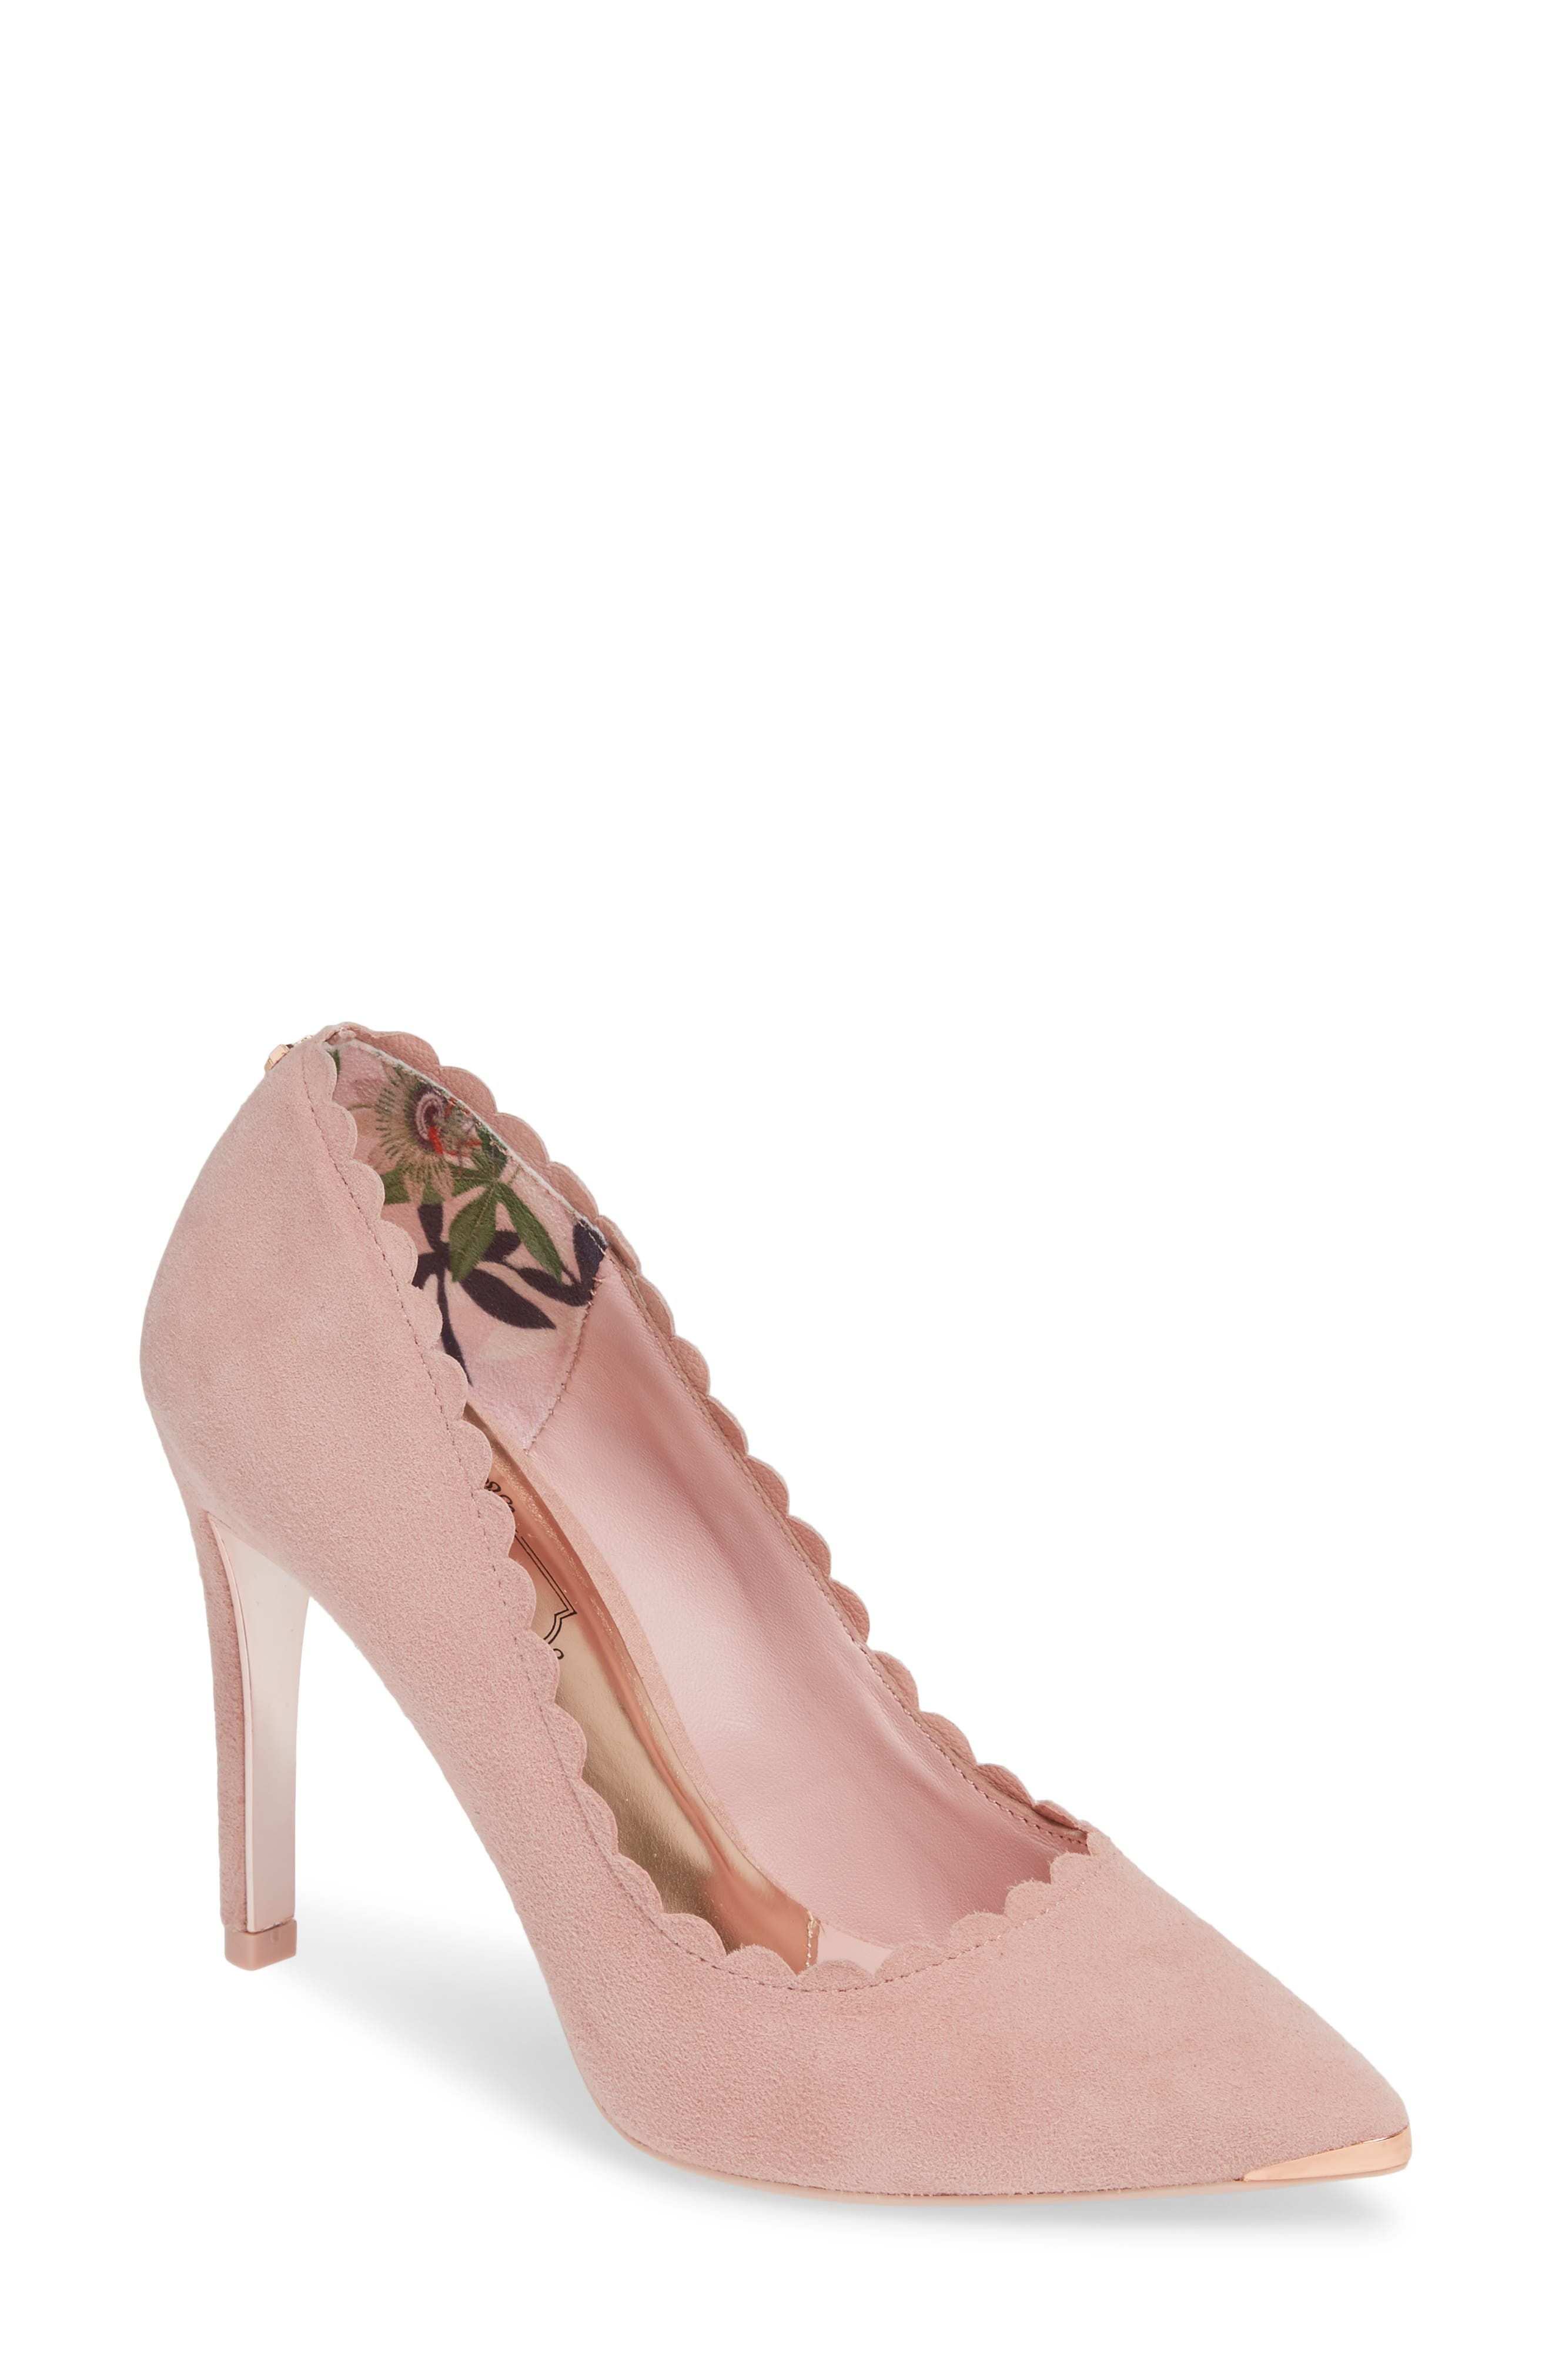 TED BAKER LONDON, Sloana Pointy Toe Pump, Main thumbnail 1, color, PINK BLOSSOM SUEDE